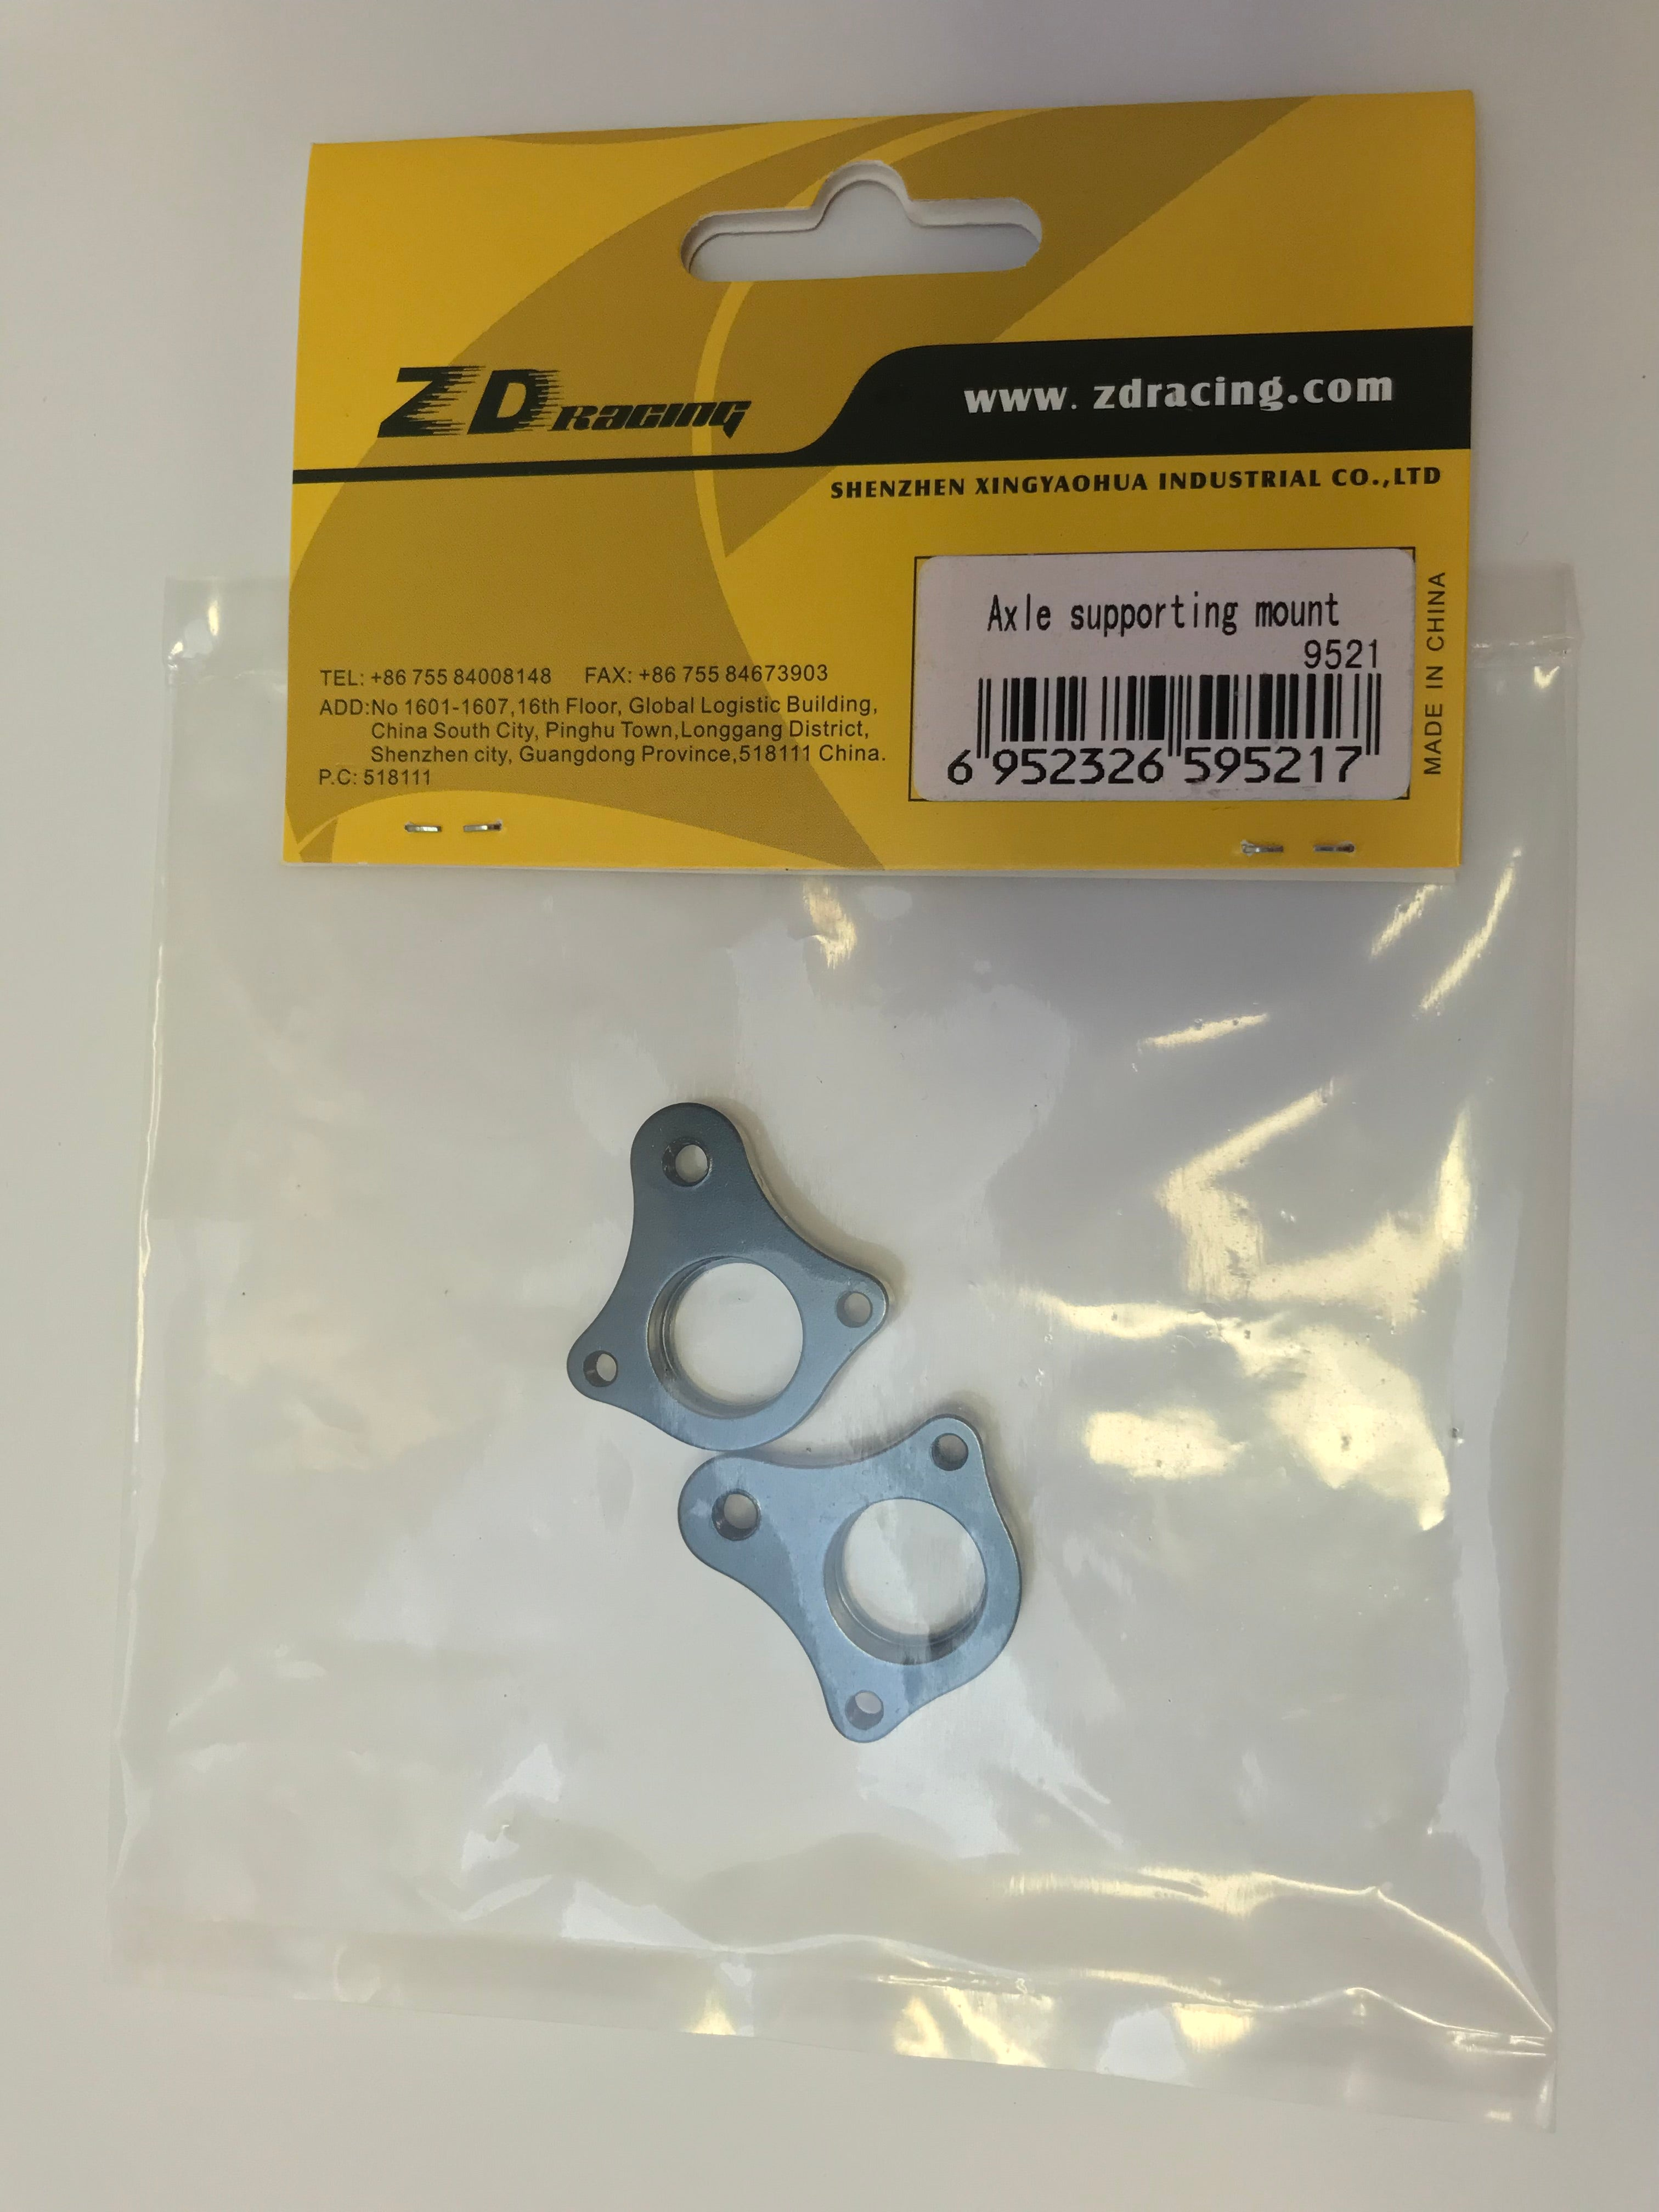 Axle supporting mount 9521